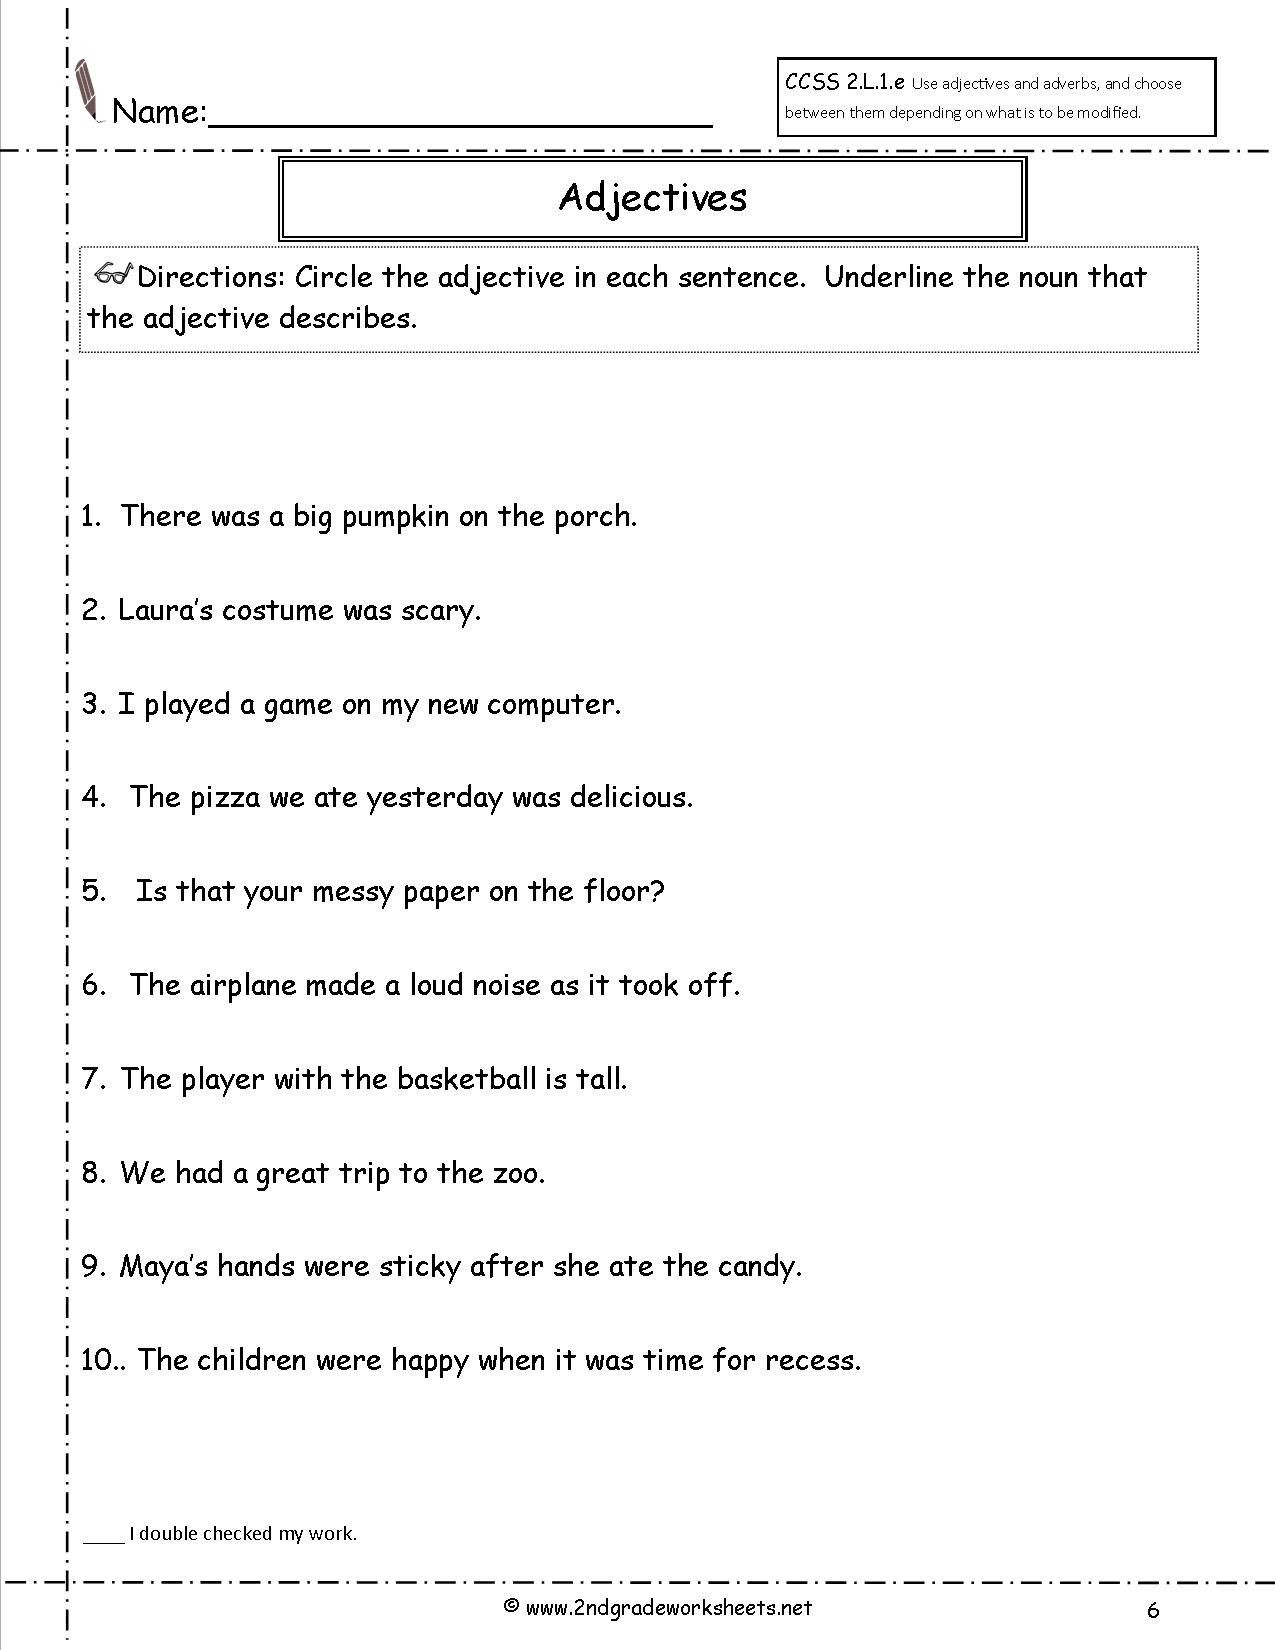 3rd Grade Adjectives Worksheets Adjective Worksheet with Images